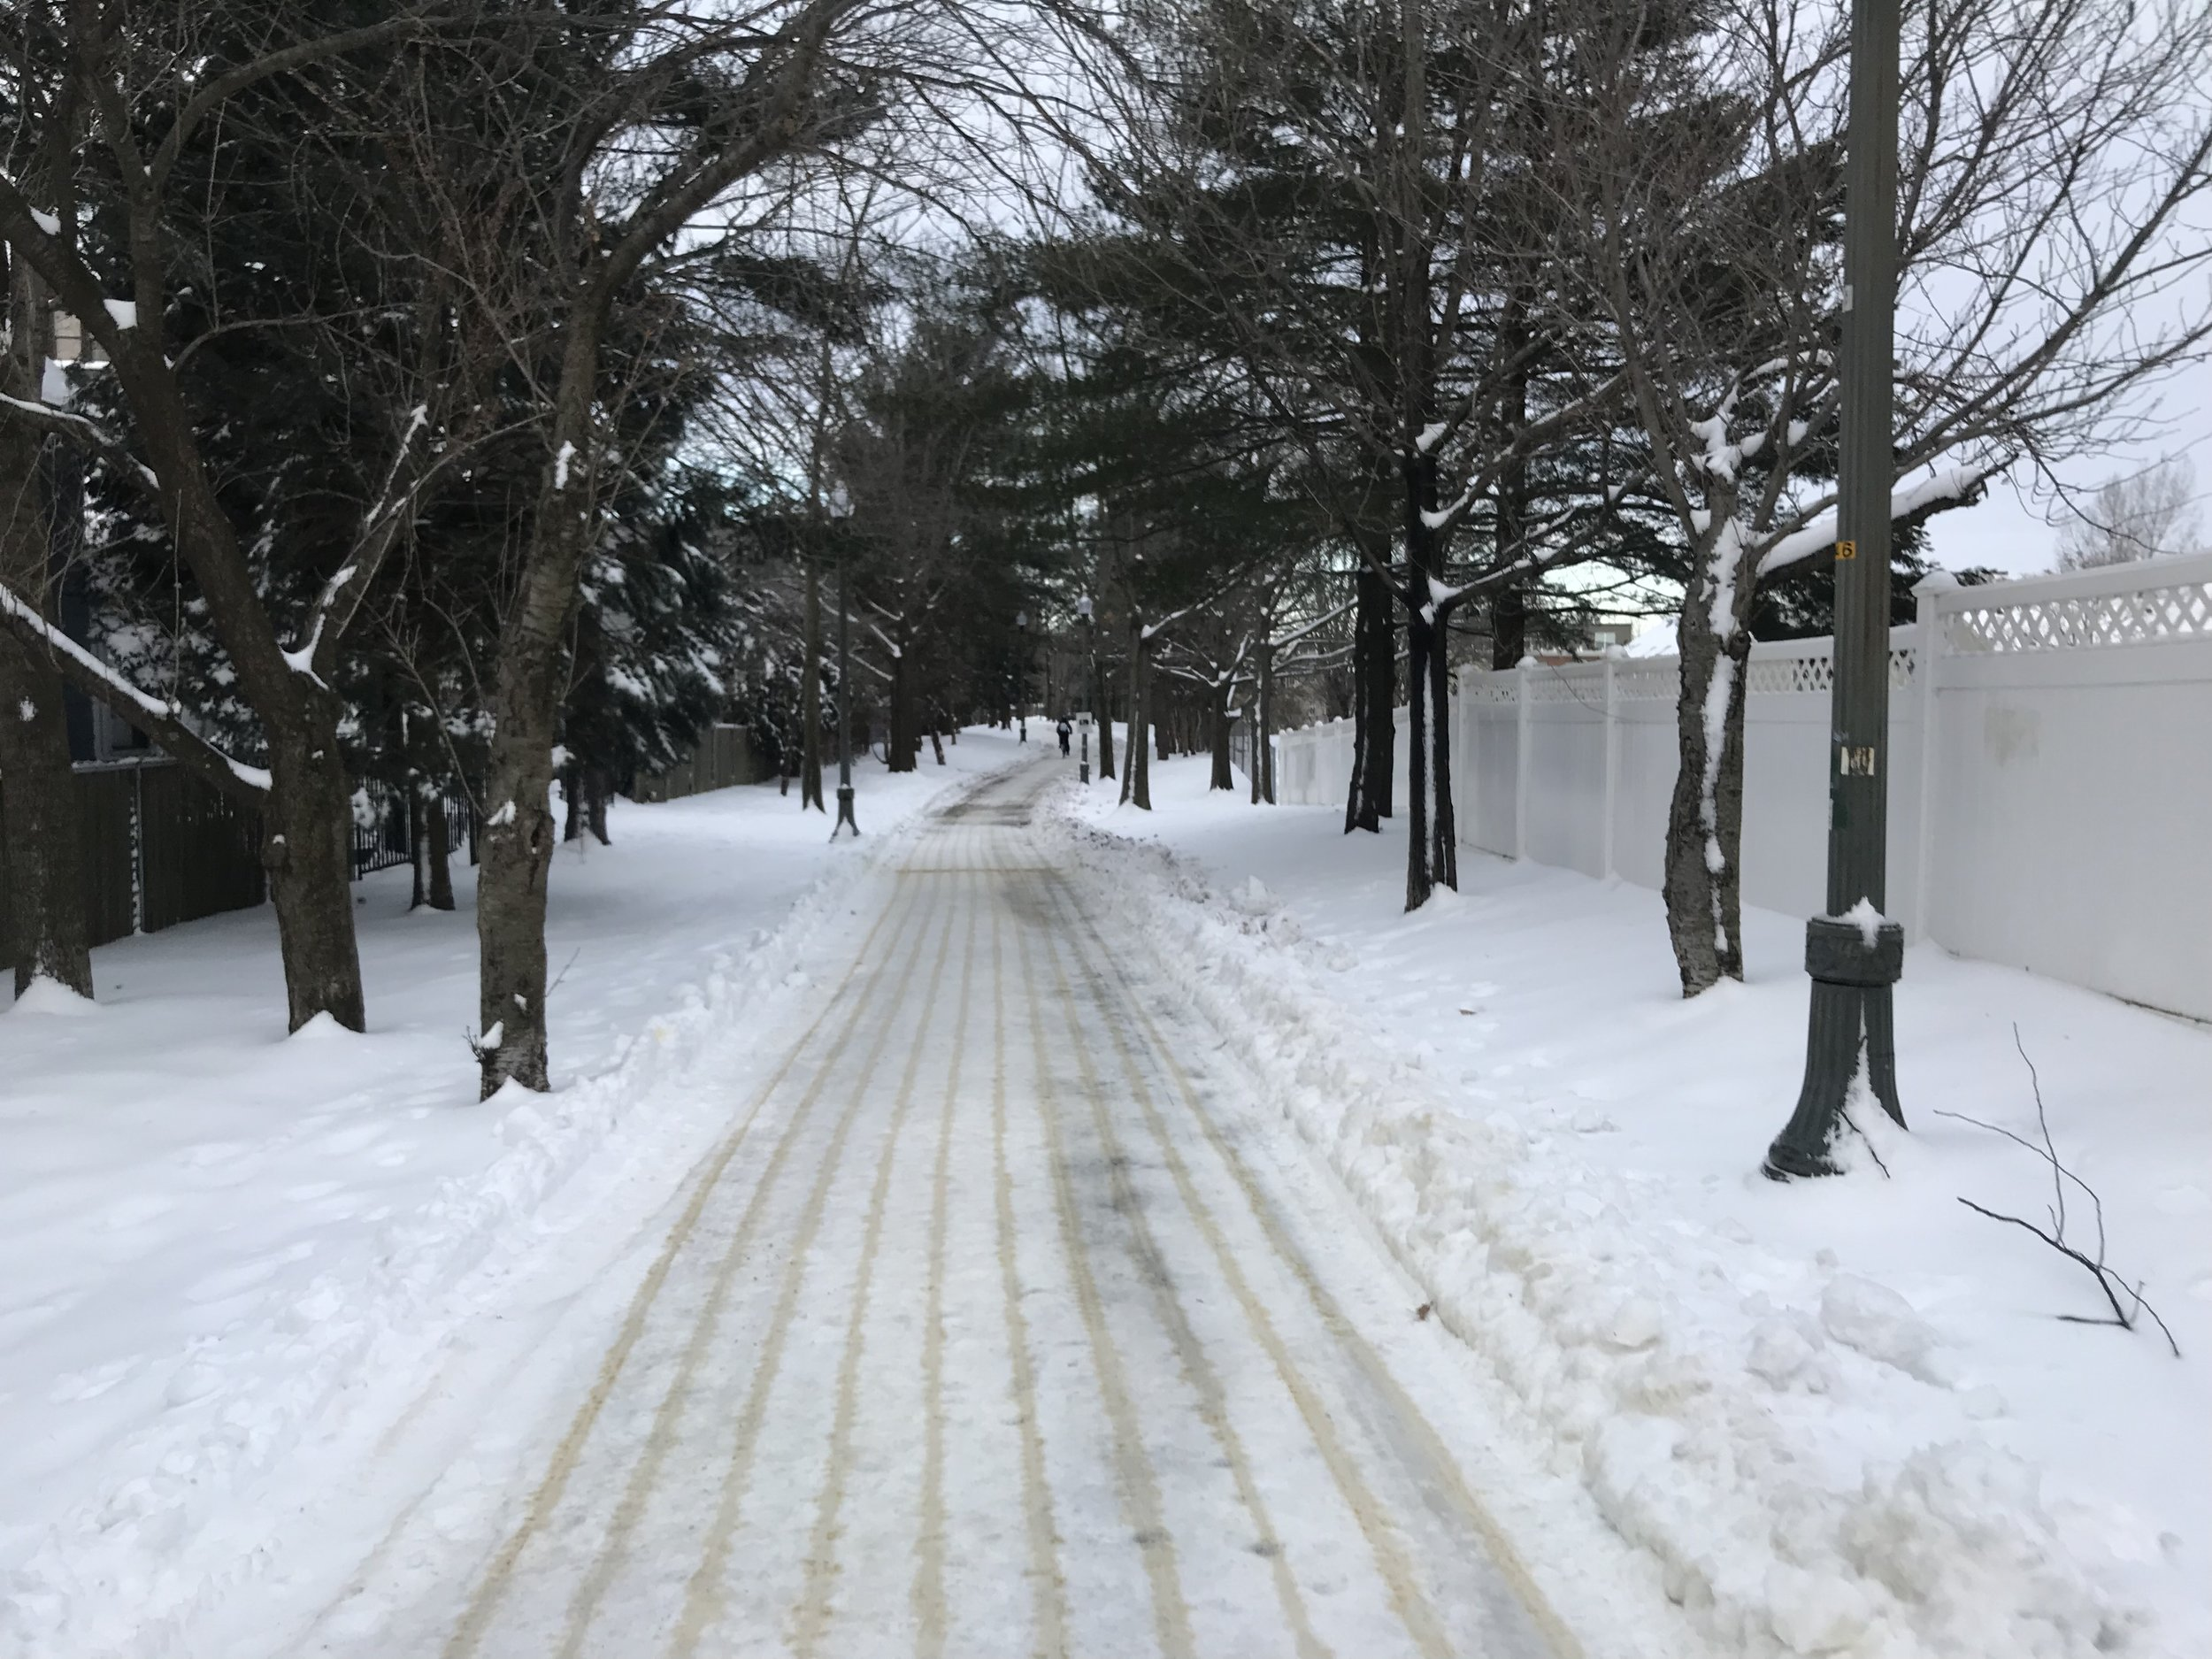 This is about as ideal as it gets for a snowy run. Somerville takes good care of its community path!